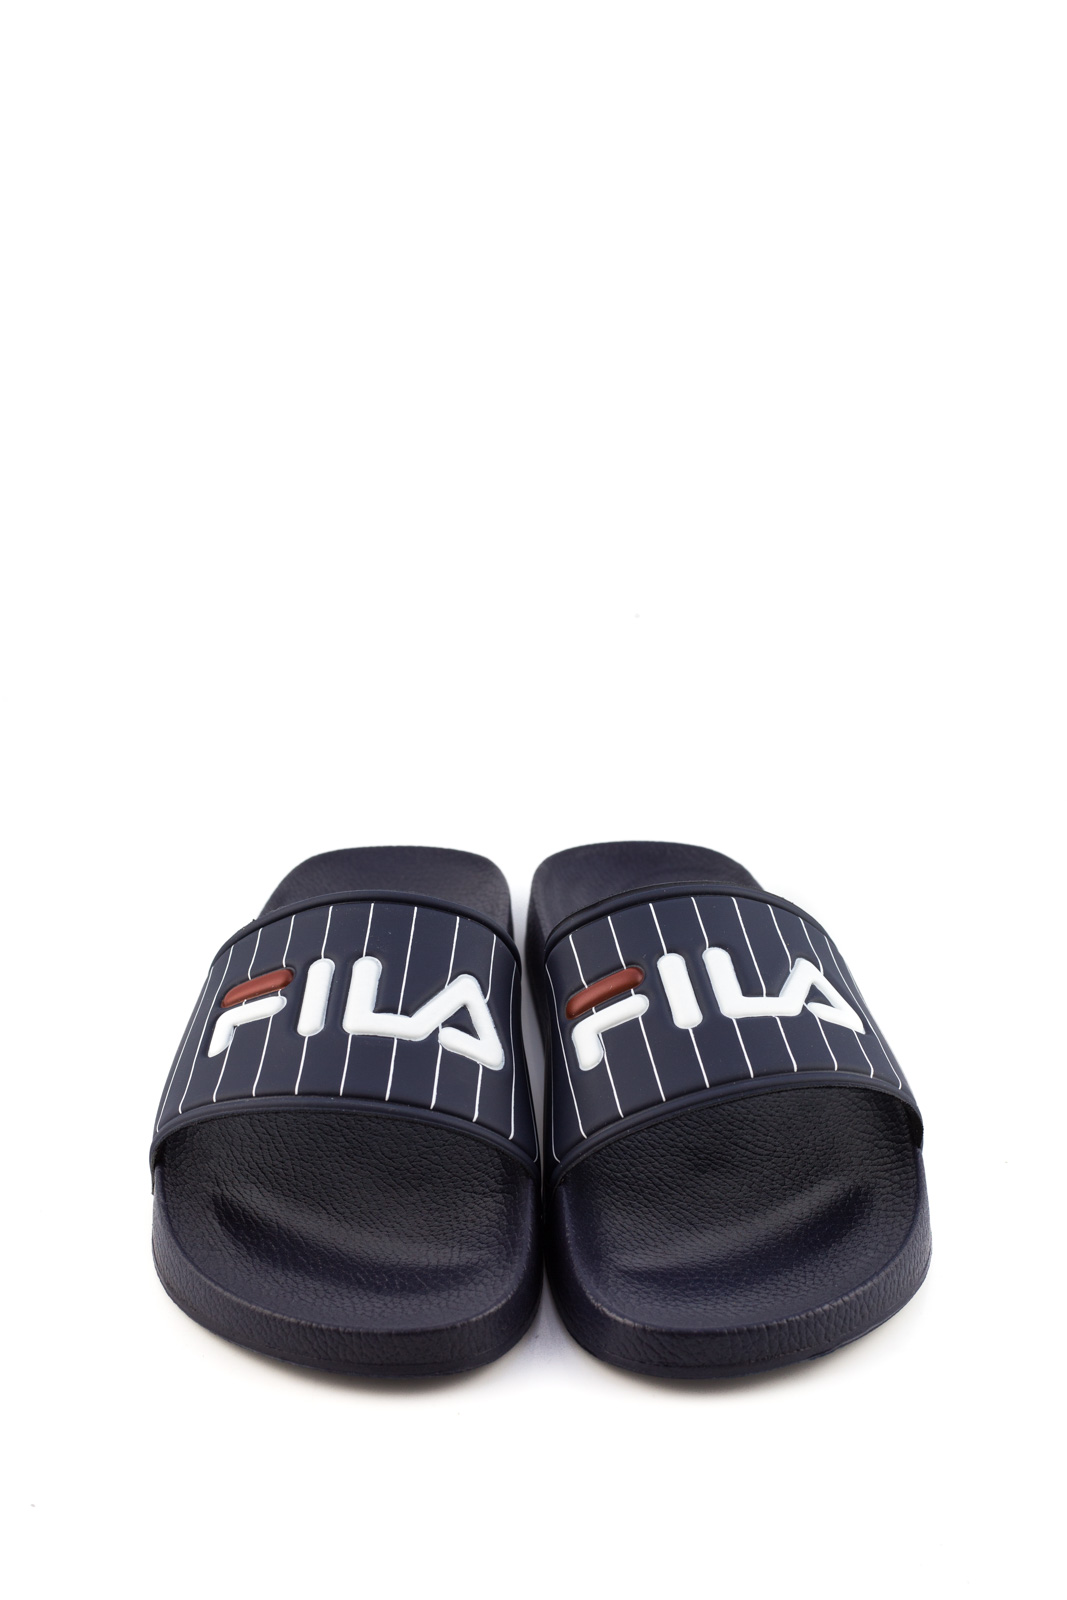 Fila - Blue Baywood Band Slippers